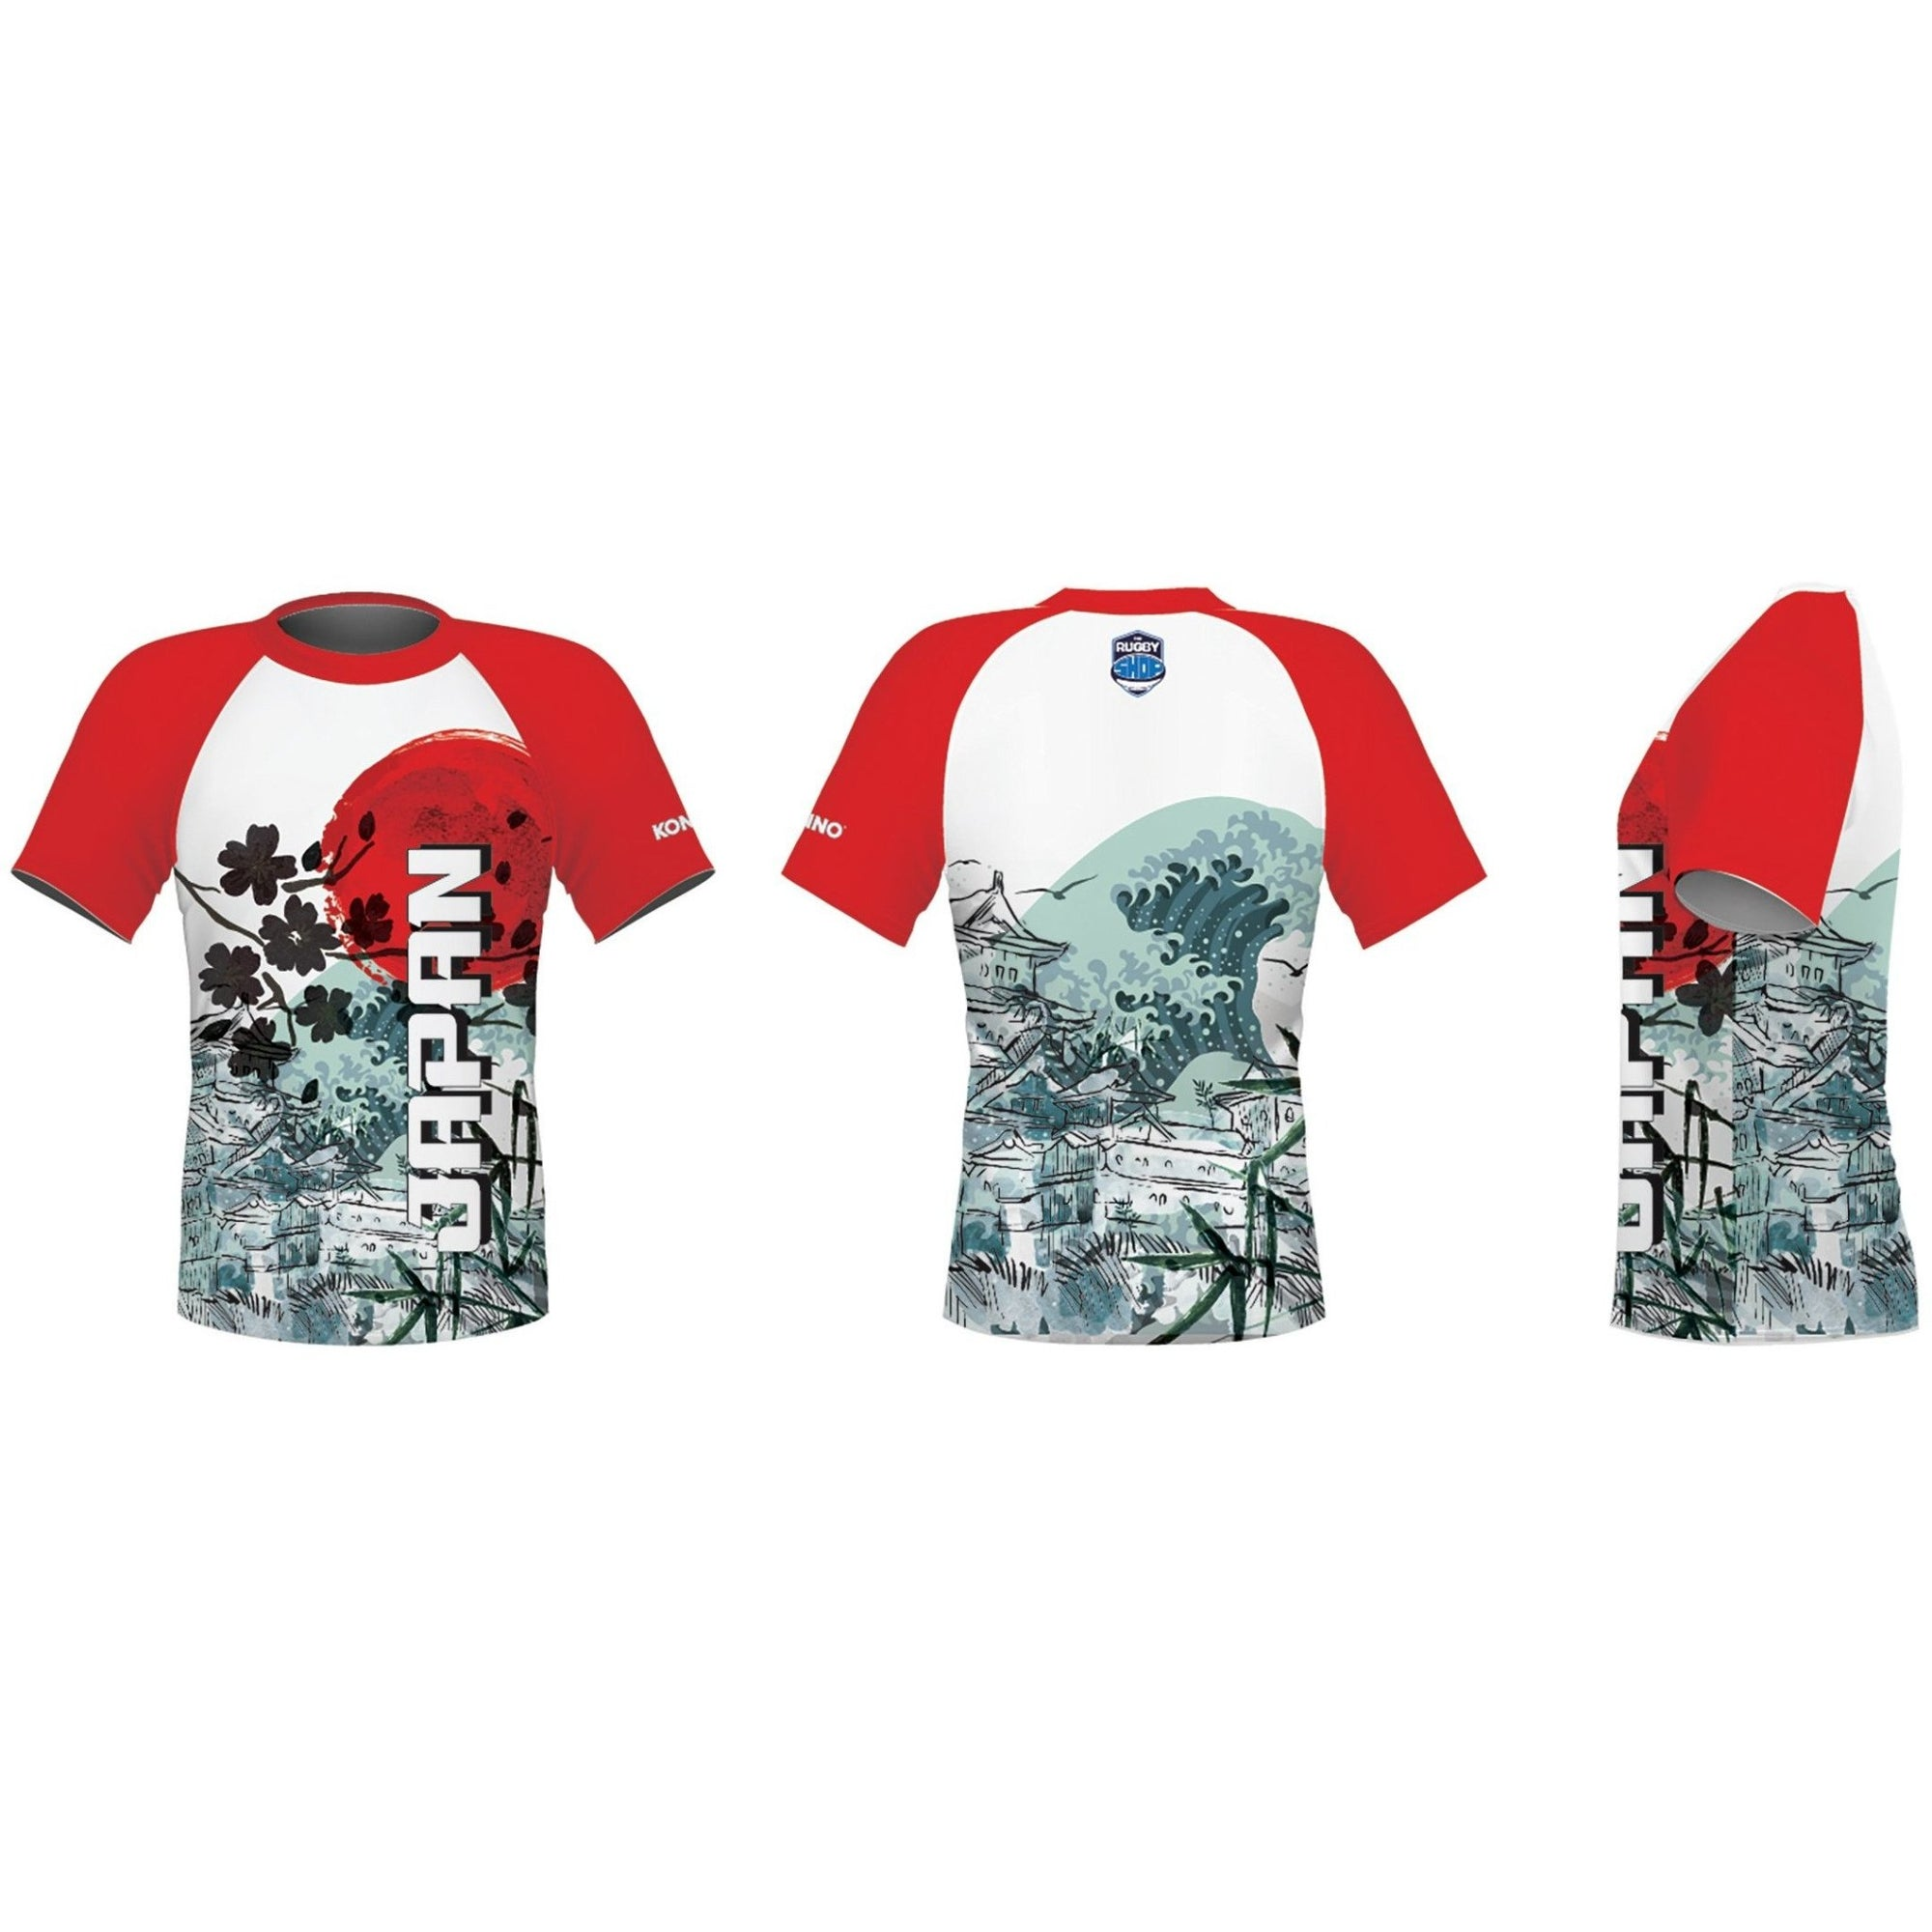 Konno International Supporter Tee - Japan - www.therugbyshop.com